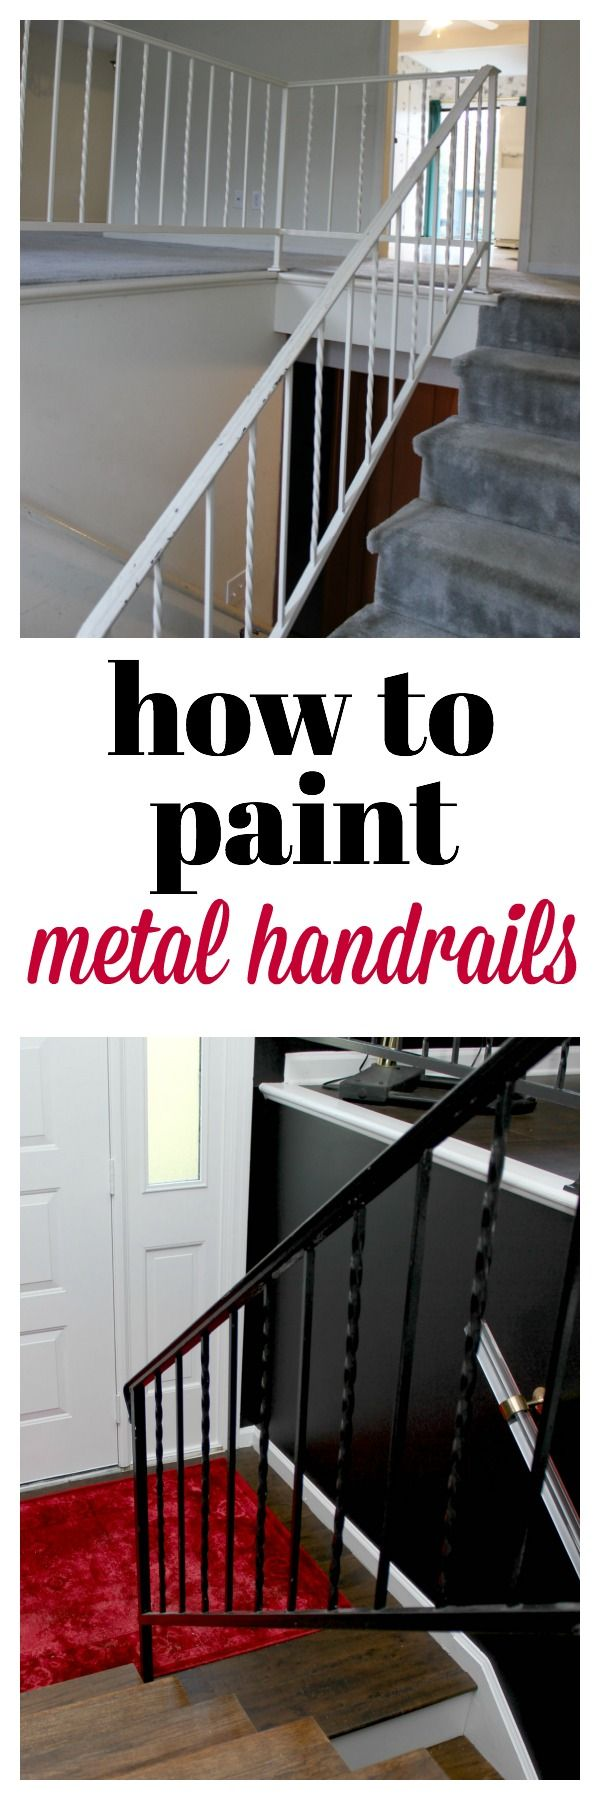 In this home decor makeover, see how Jenna of @rainonatinroof gives her entryway a facelift with a coat of black semi-gloss paint. In this DIY tutorial, you'll learn how to paint metal handrails and transform an outdated stairwell.